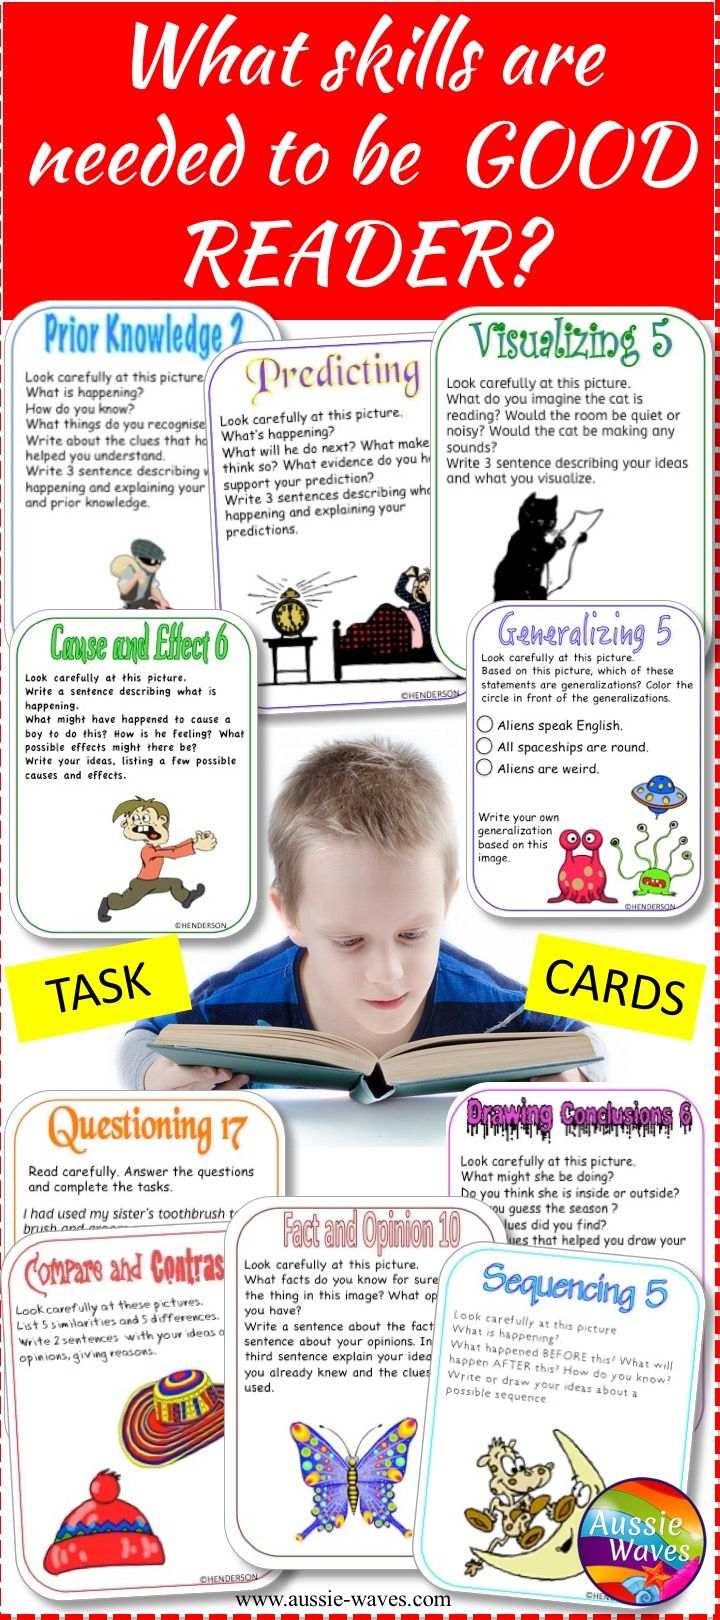 Teach children how to Read and improve comprehension skills with these posters and task cards.